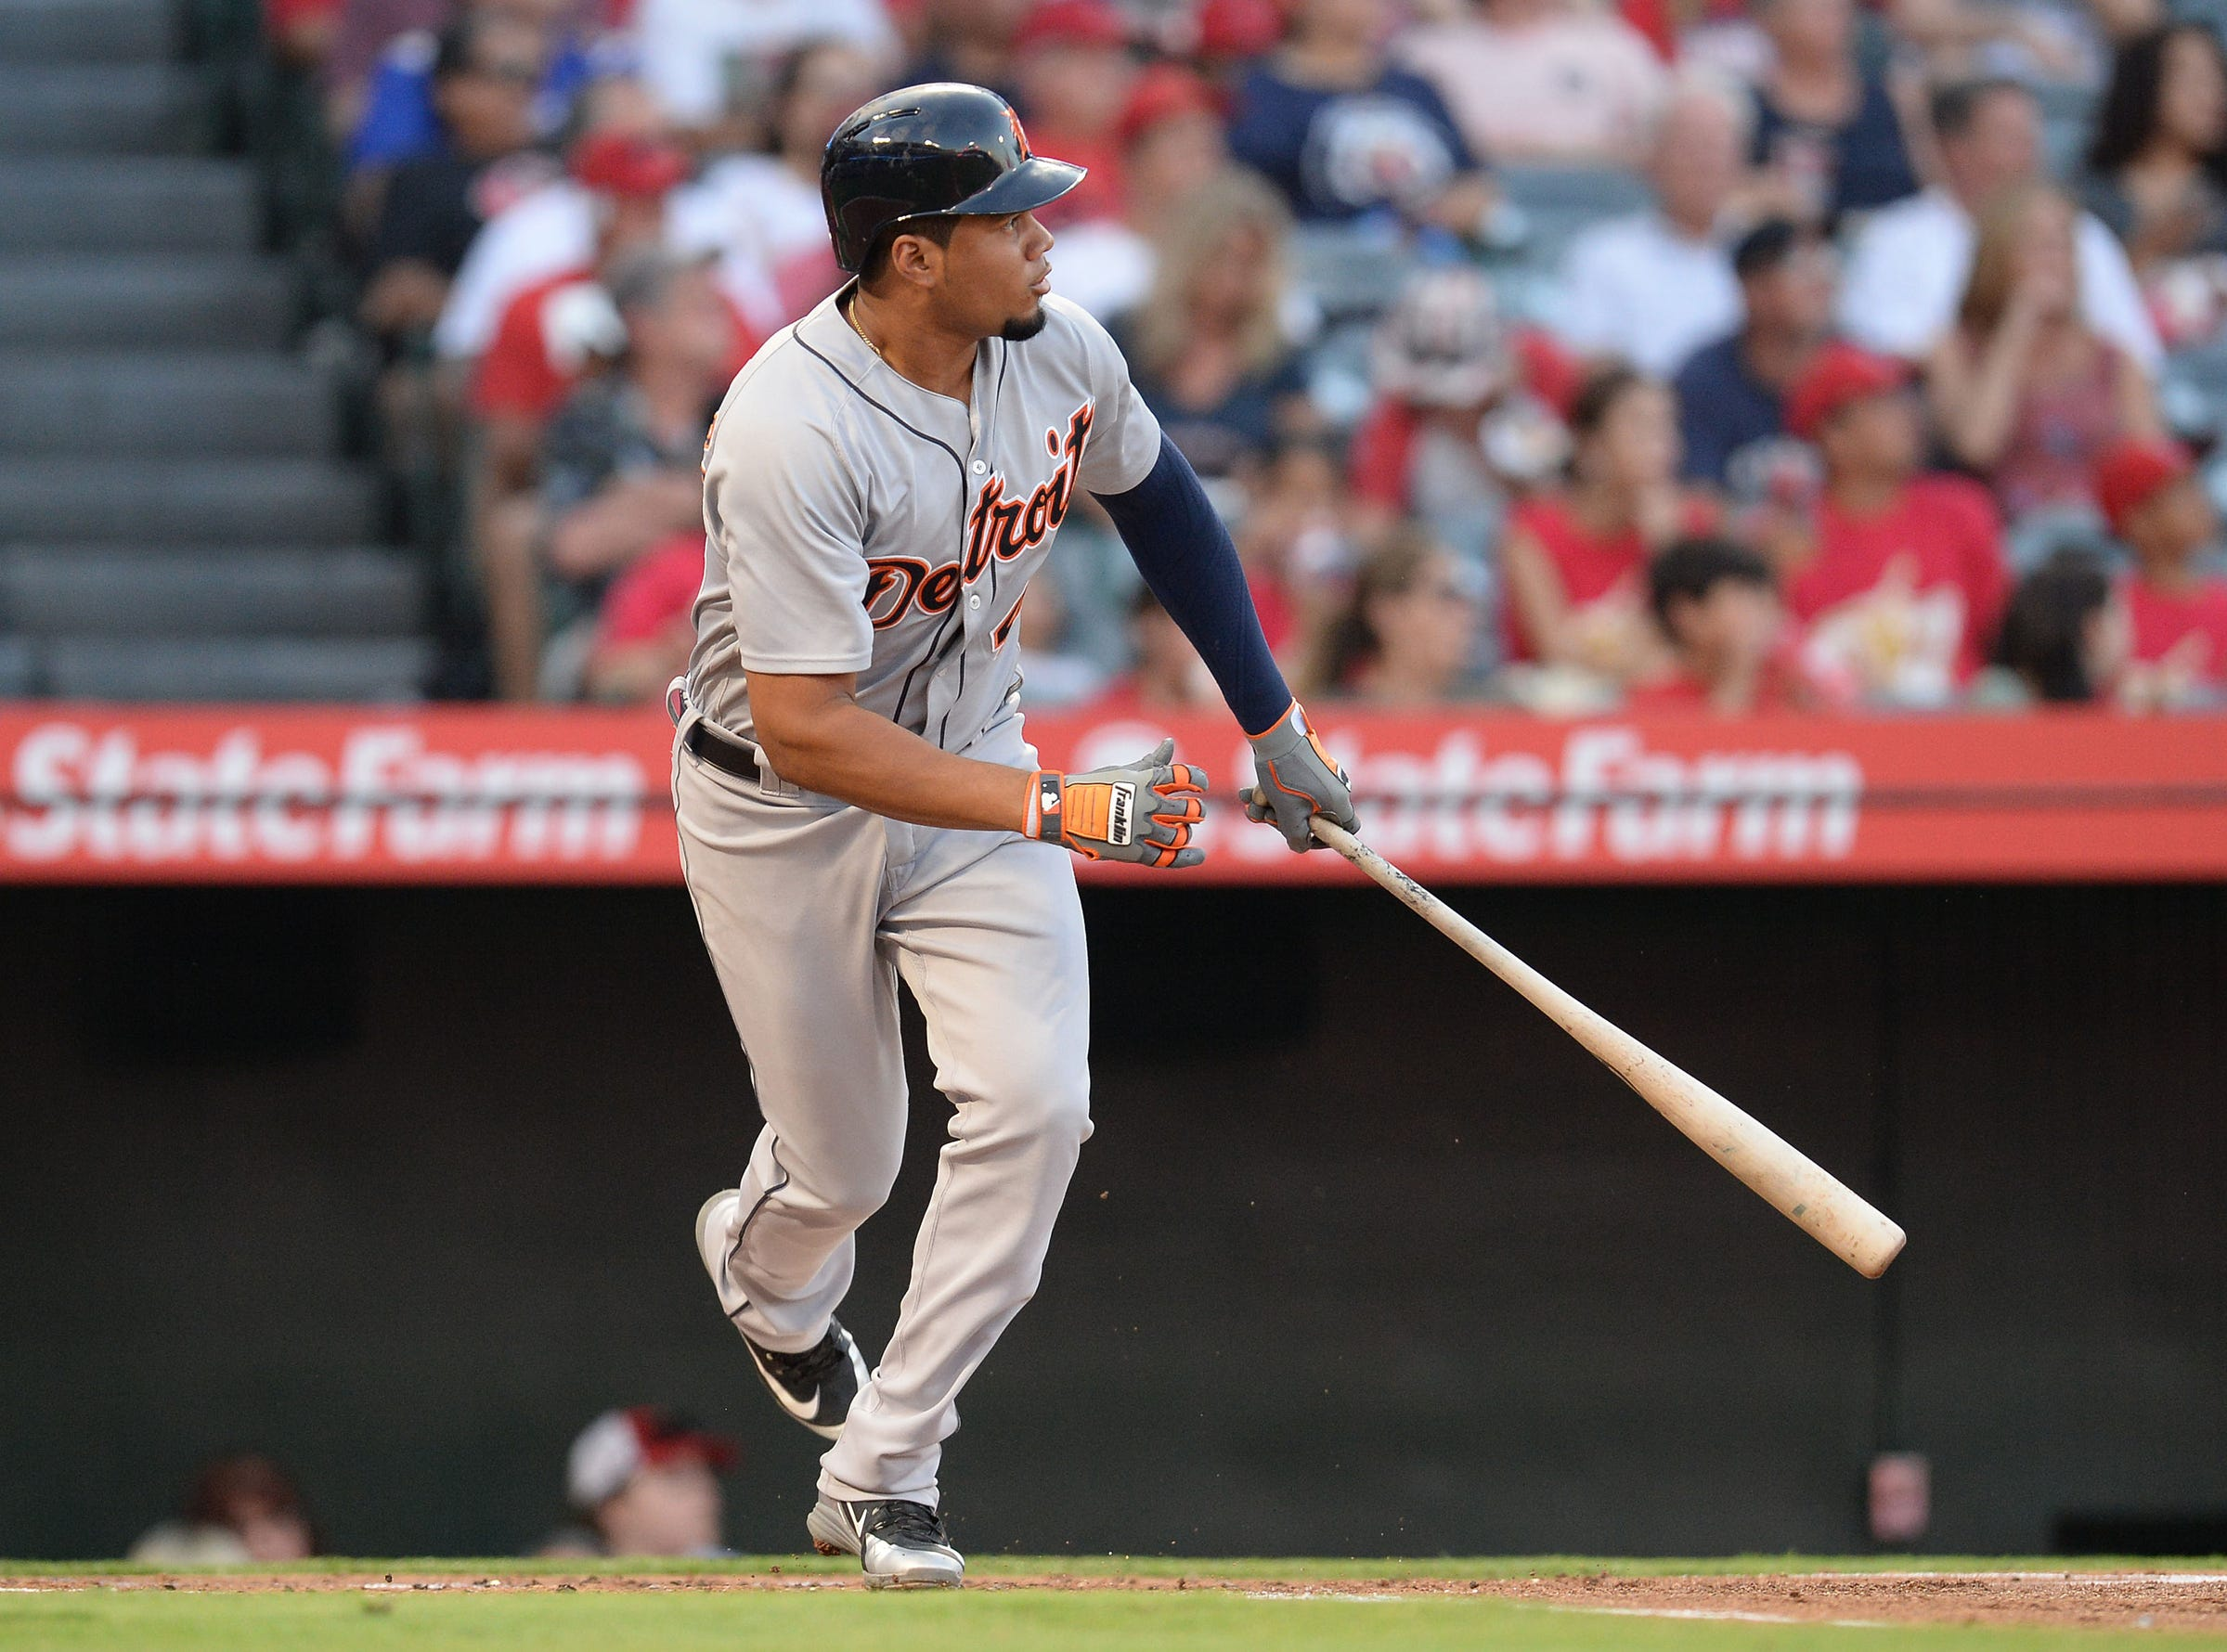 Tigers third baseman Jeimer Candelario hits an RBI ground rule double in the first inning on Tuesday, Aug. 7, 2018, in Anaheim, Calif.